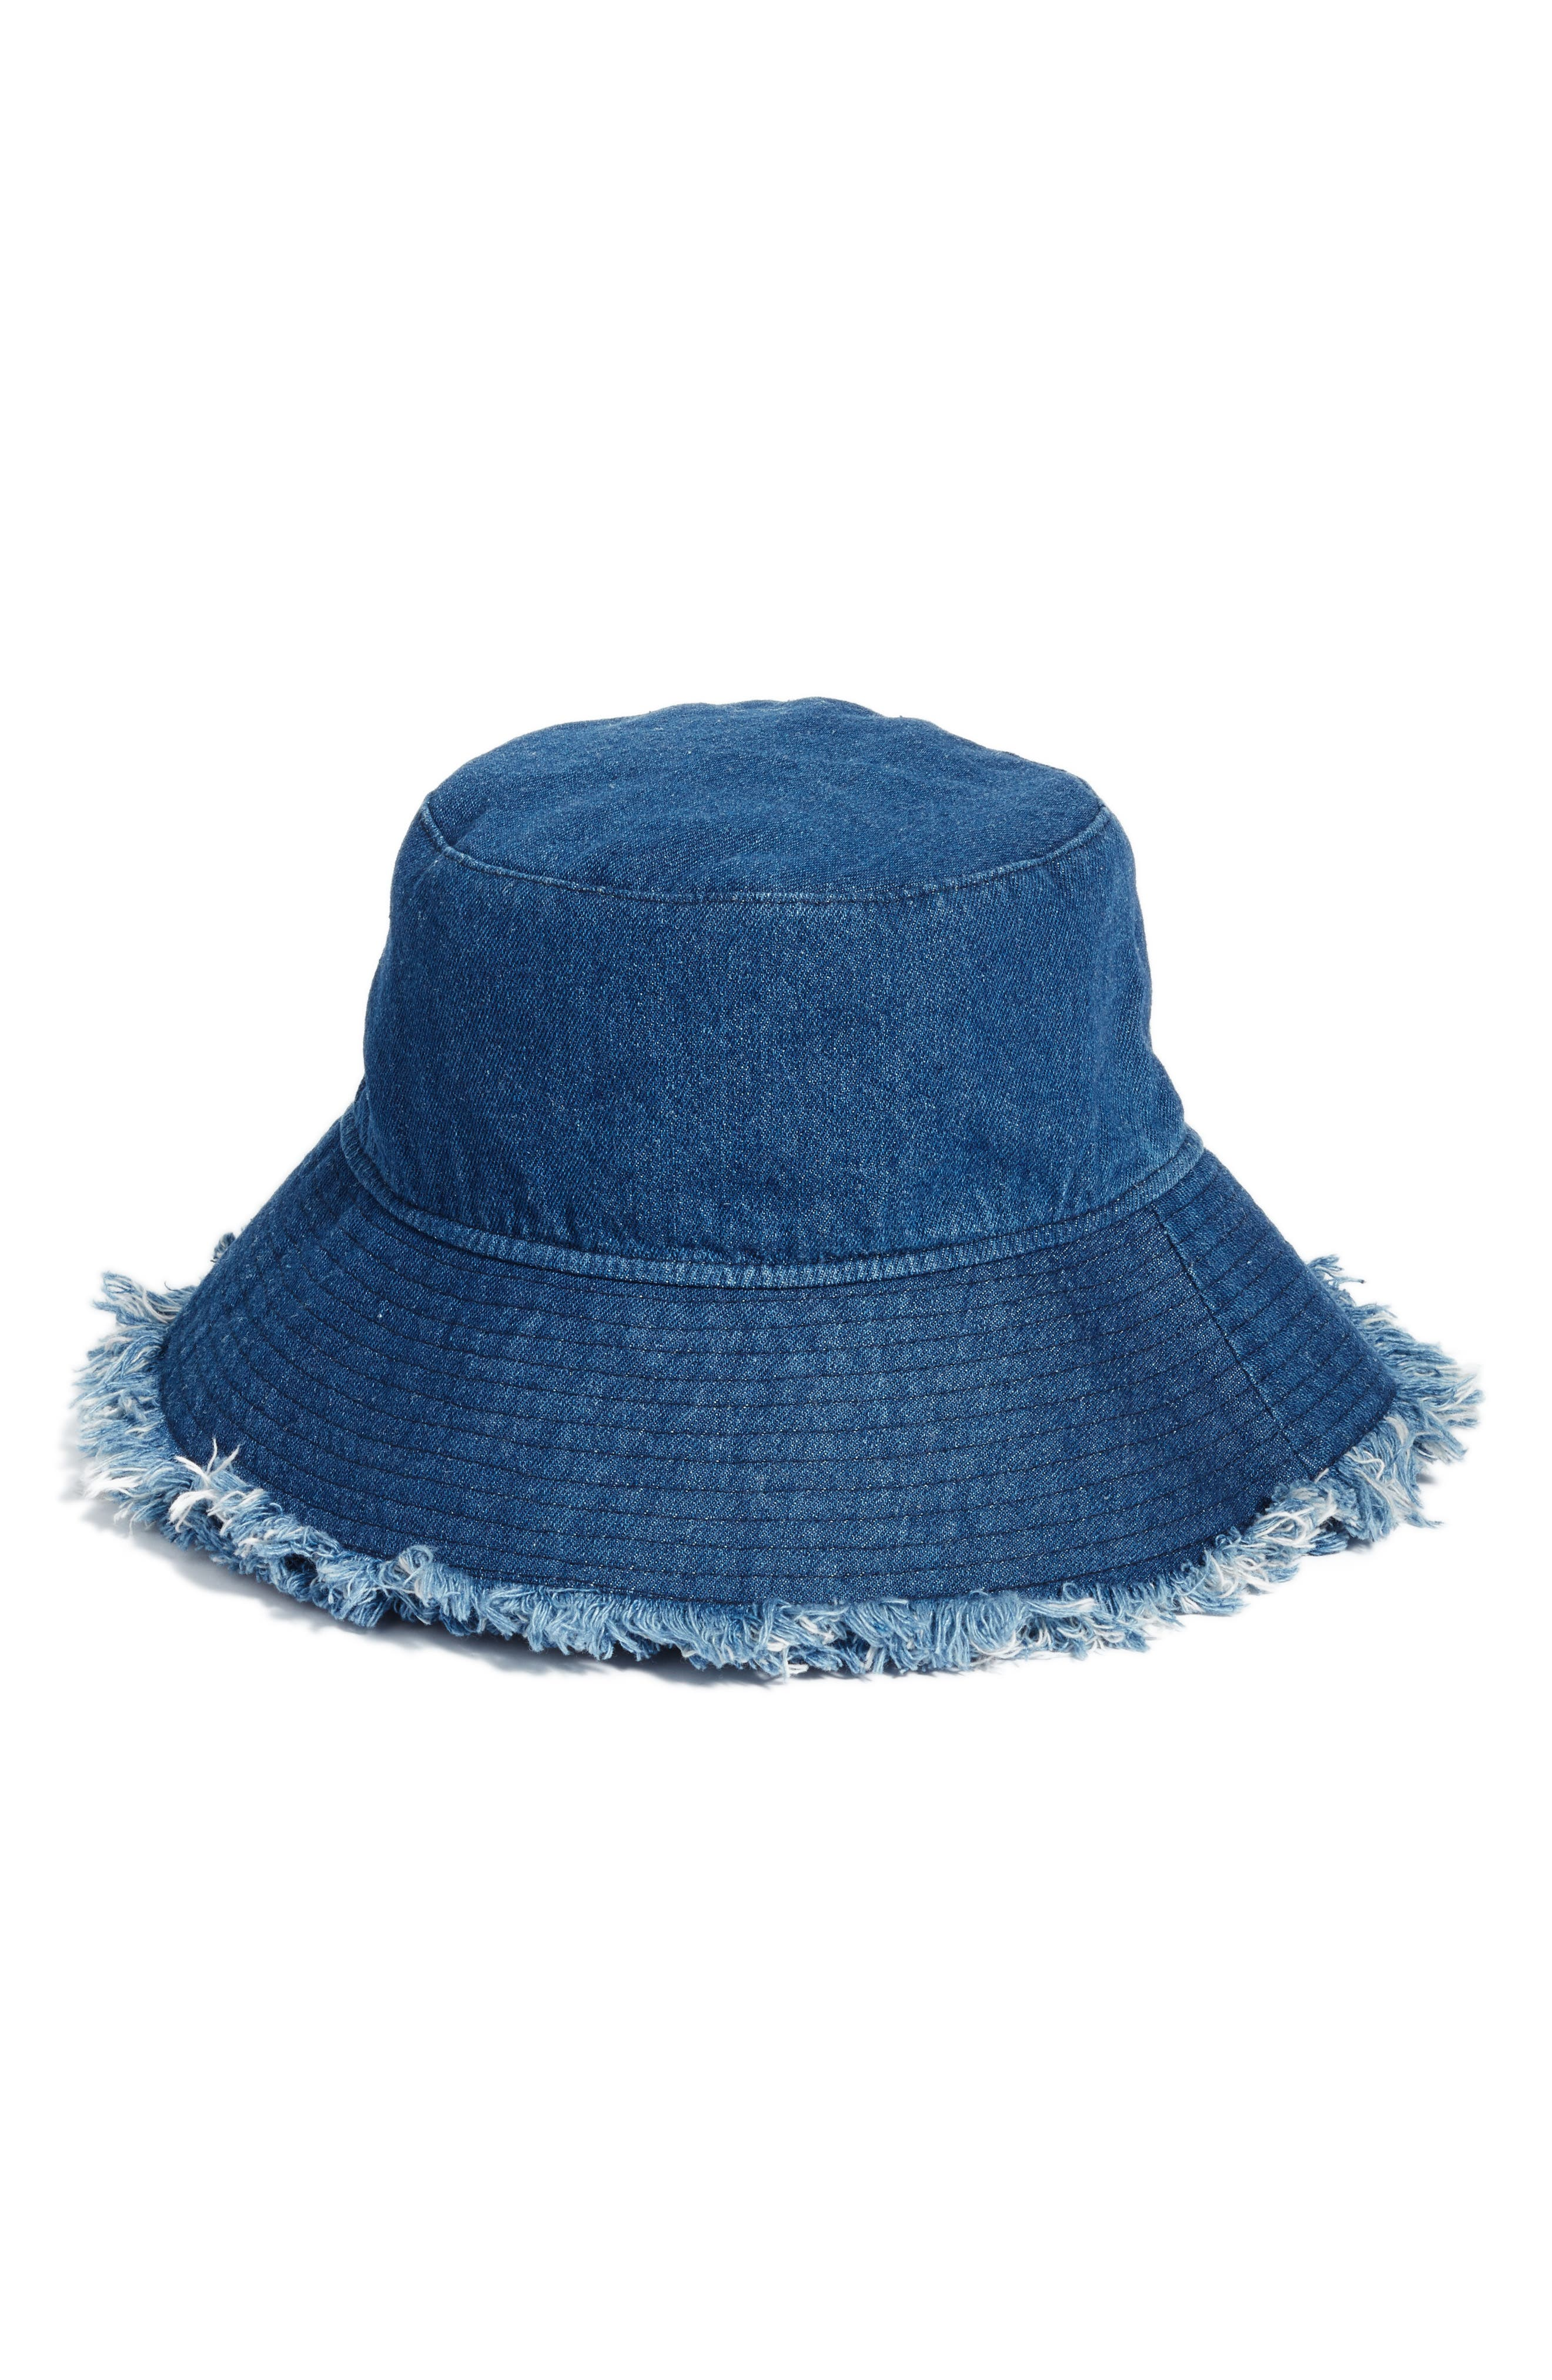 Denim Bucket Hat,                         Main,                         color, 410